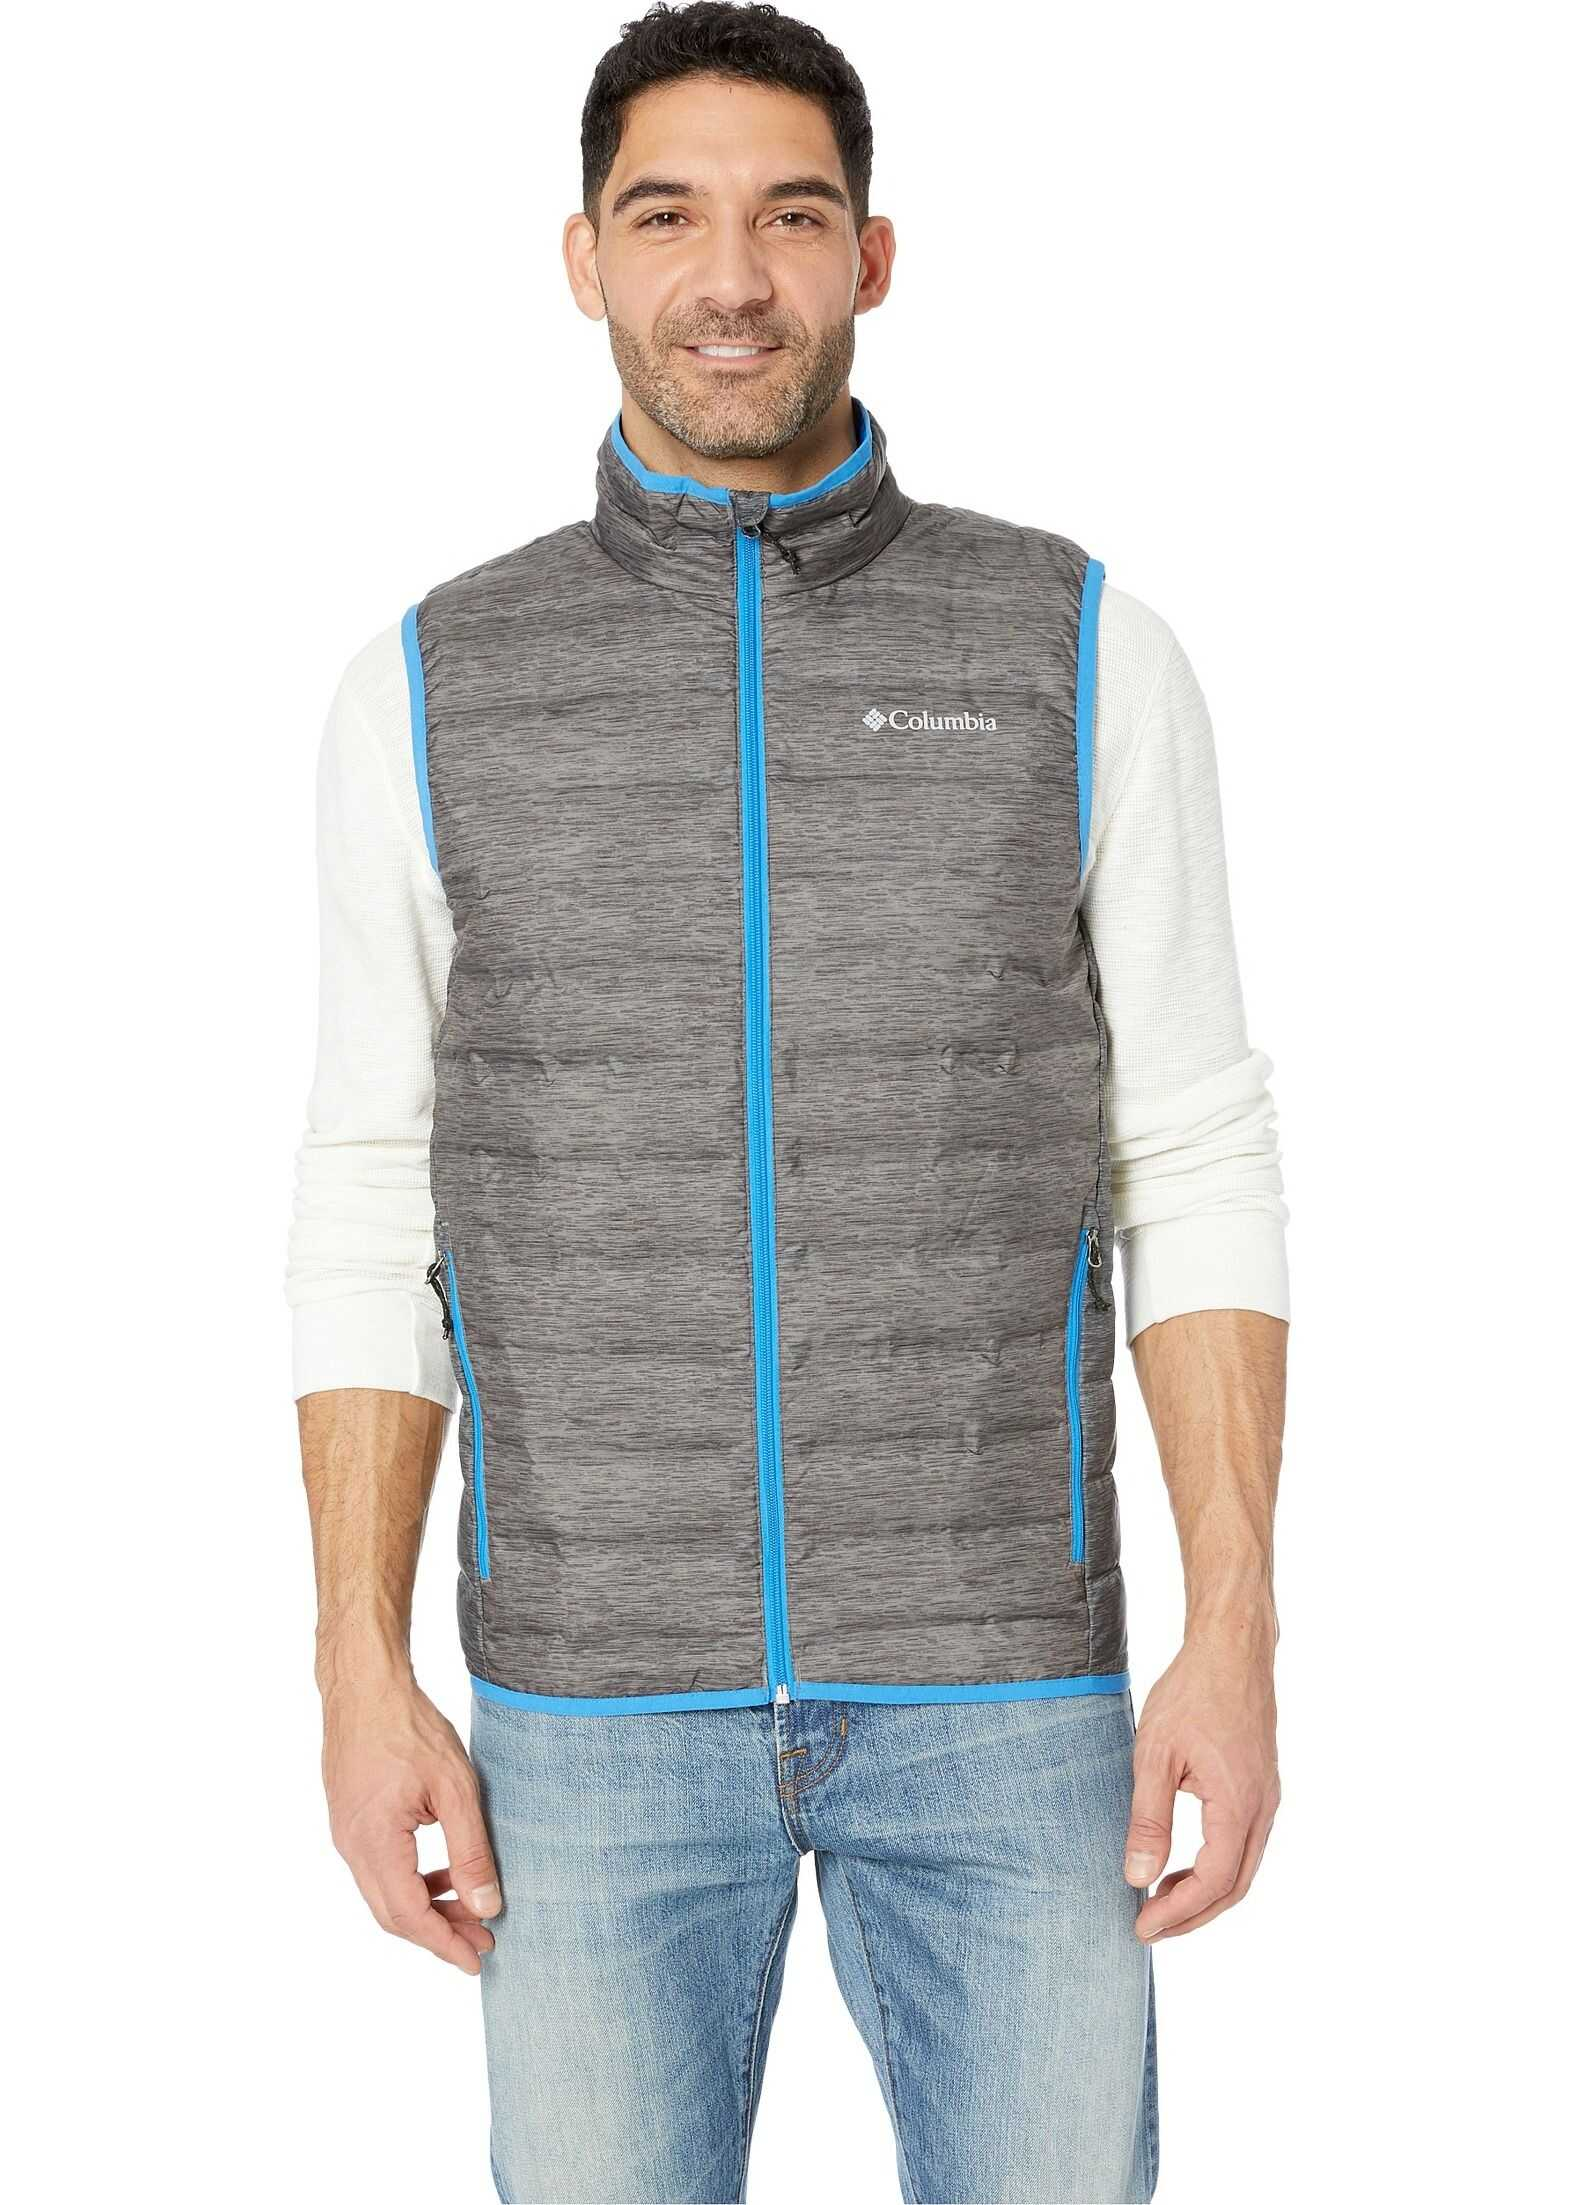 Columbia Lake 22 Down Vest Charcoal Heather Print/Azure Blue